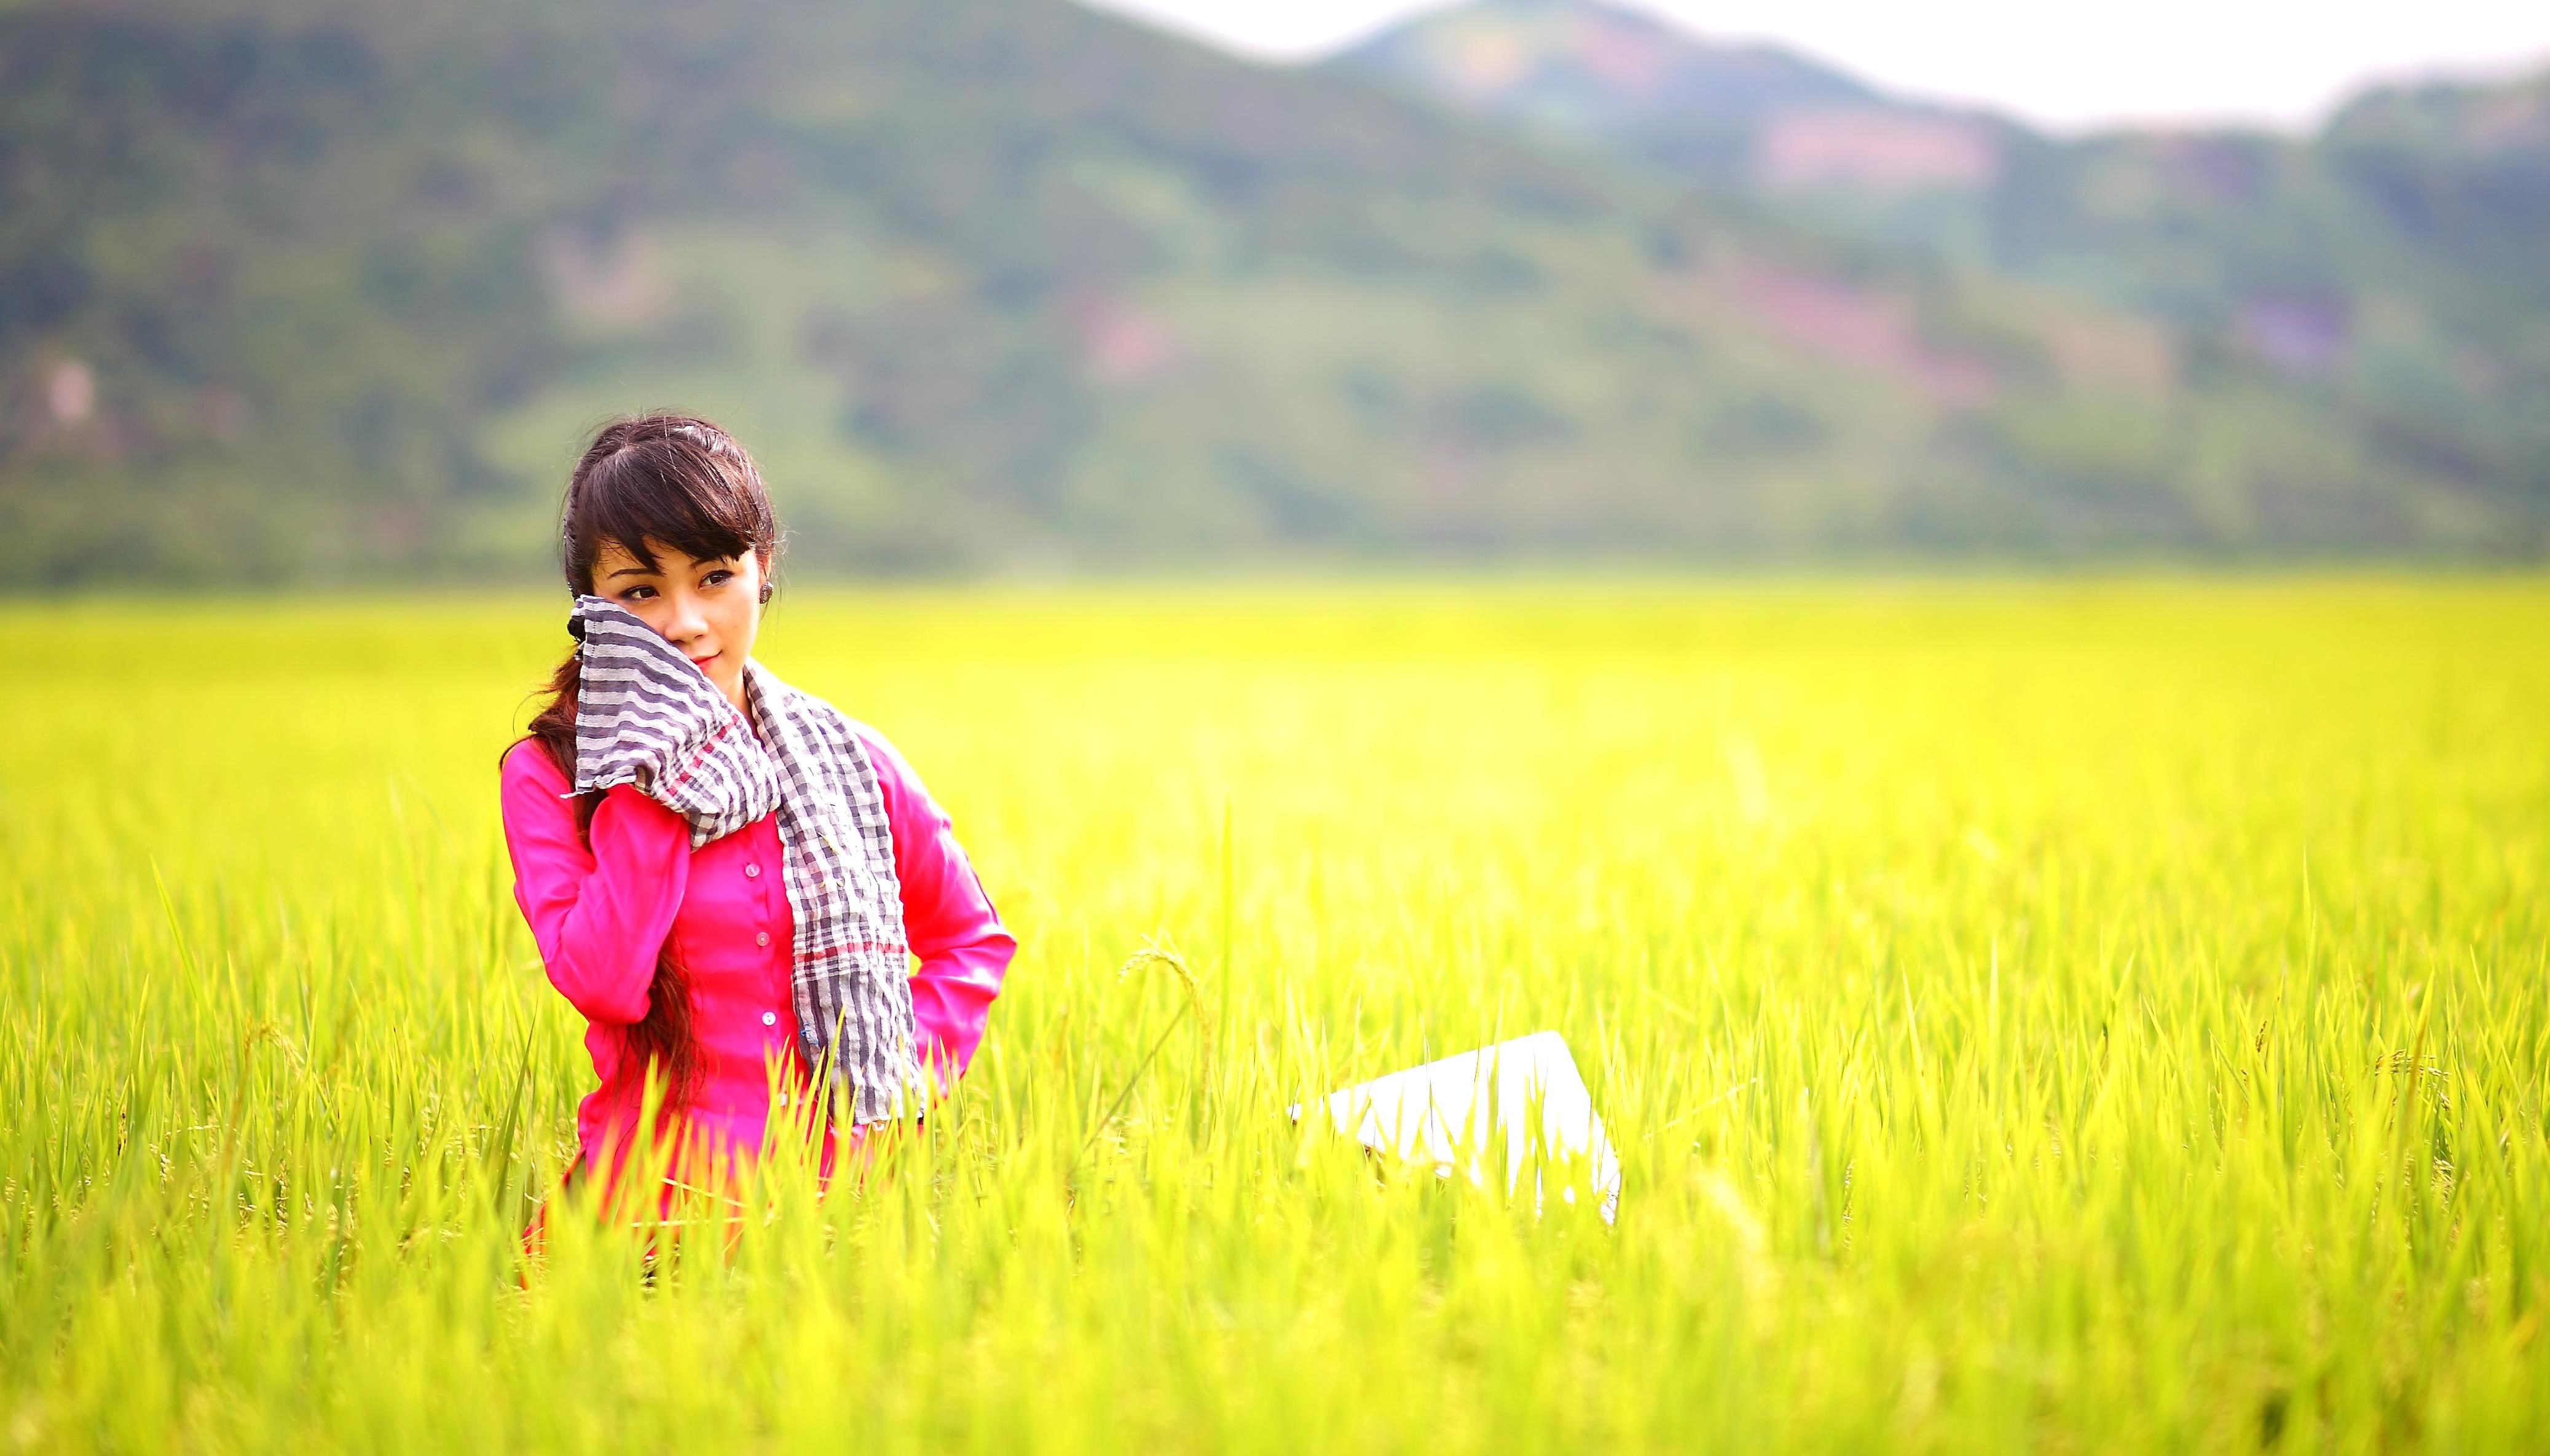 Attractive Girl Wallpaper Free Picture Field Nature Grass Girl Meadow